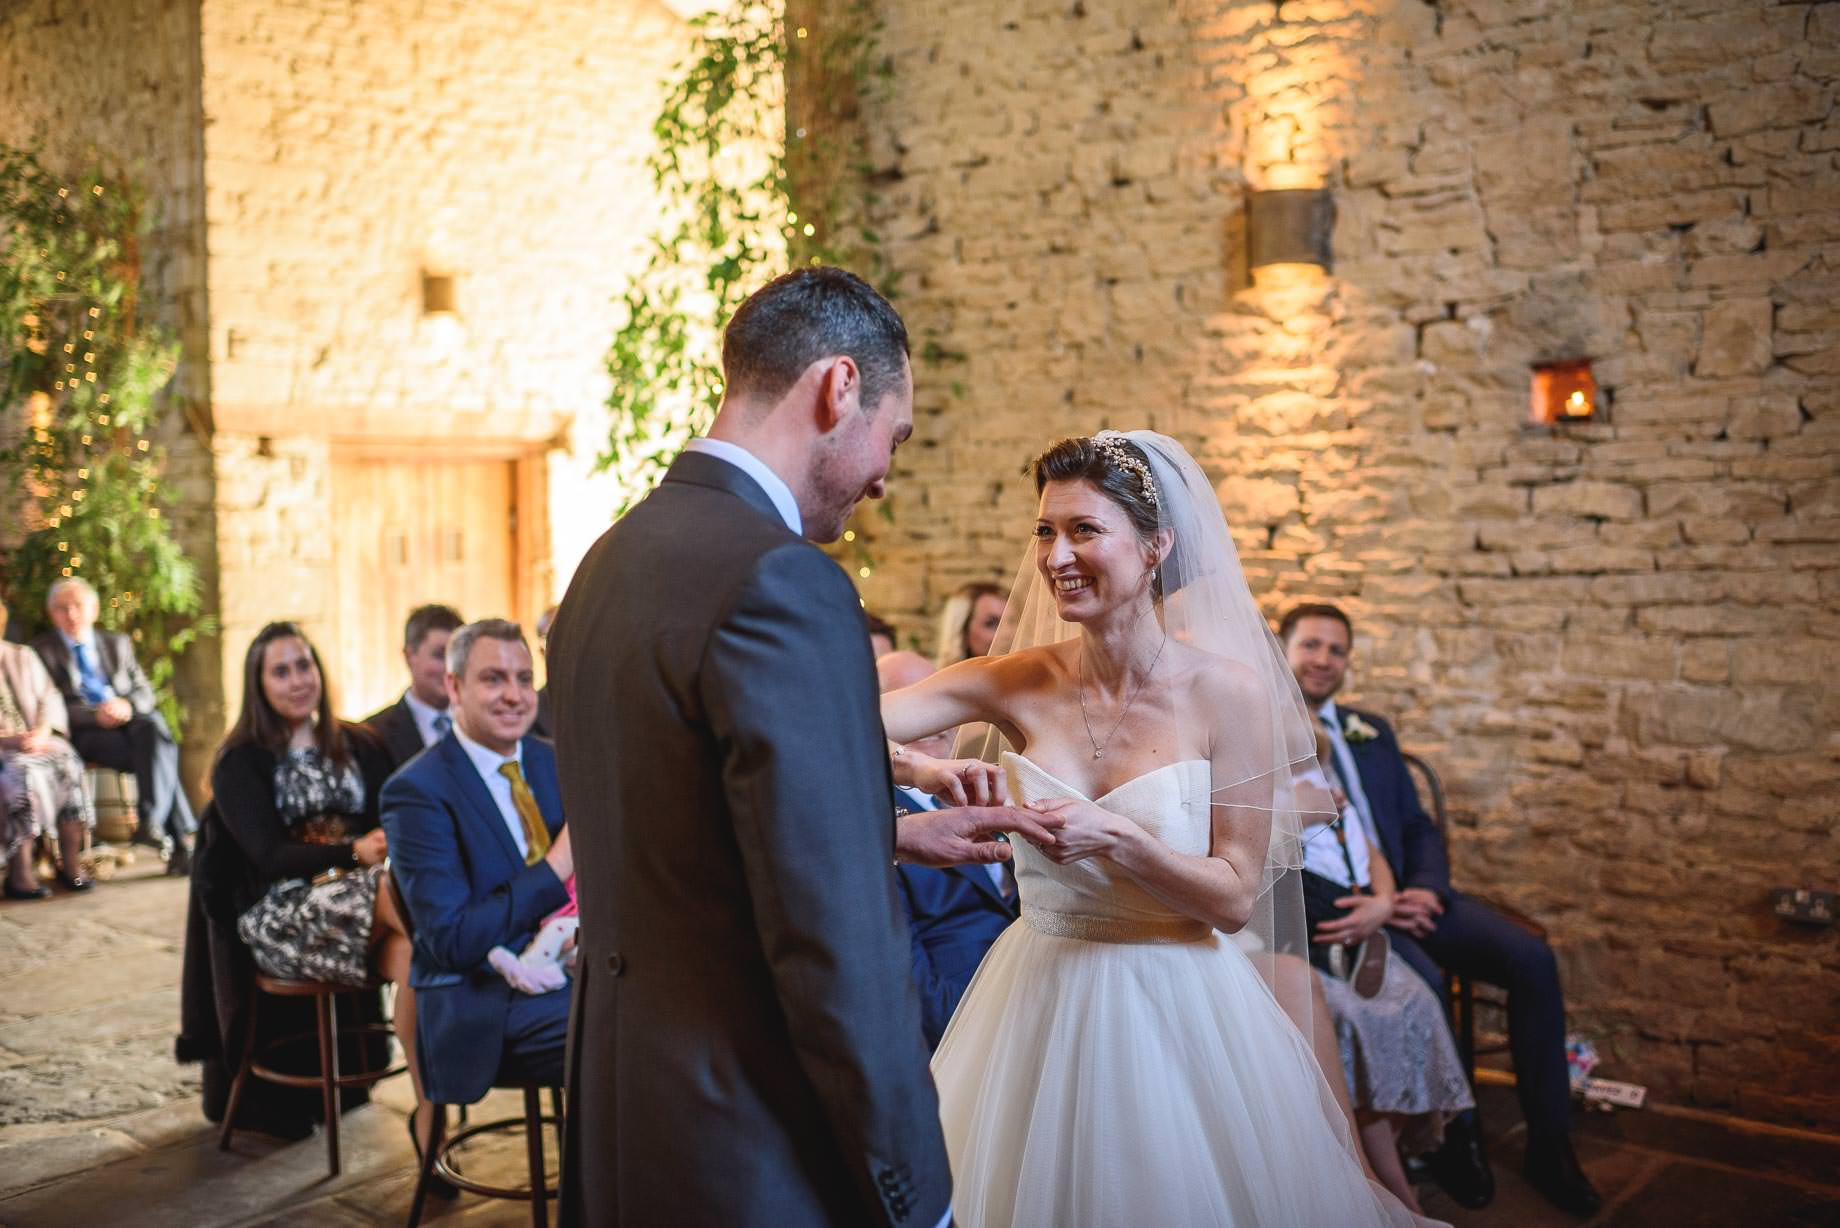 Cripps Barn wedding photography by Guy Collier Photography